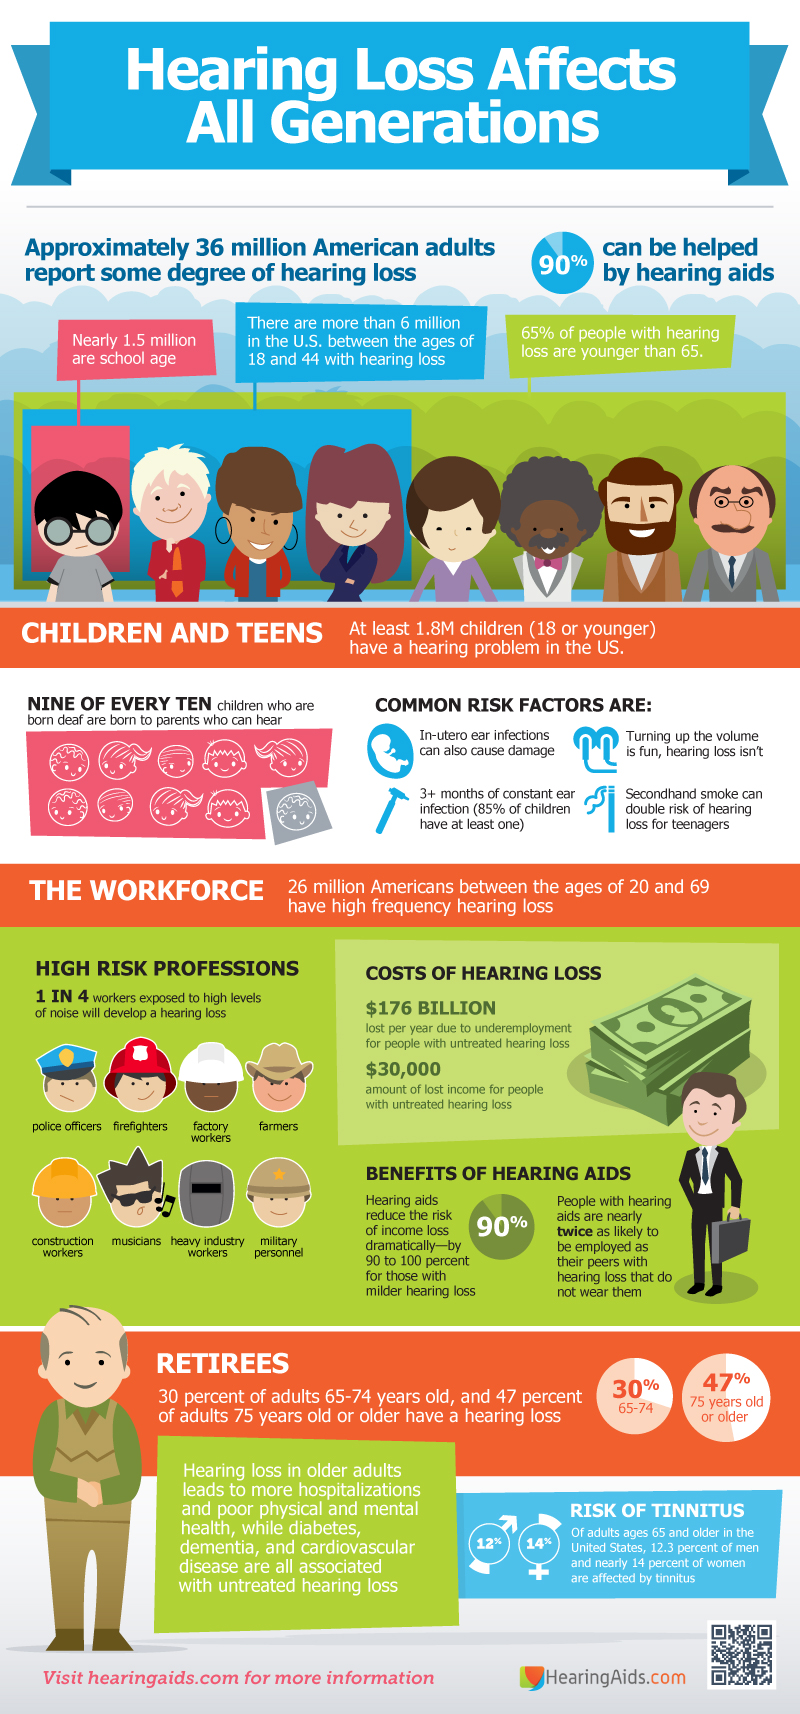 hearing-loss-affects-all-generations_5265931601fa9